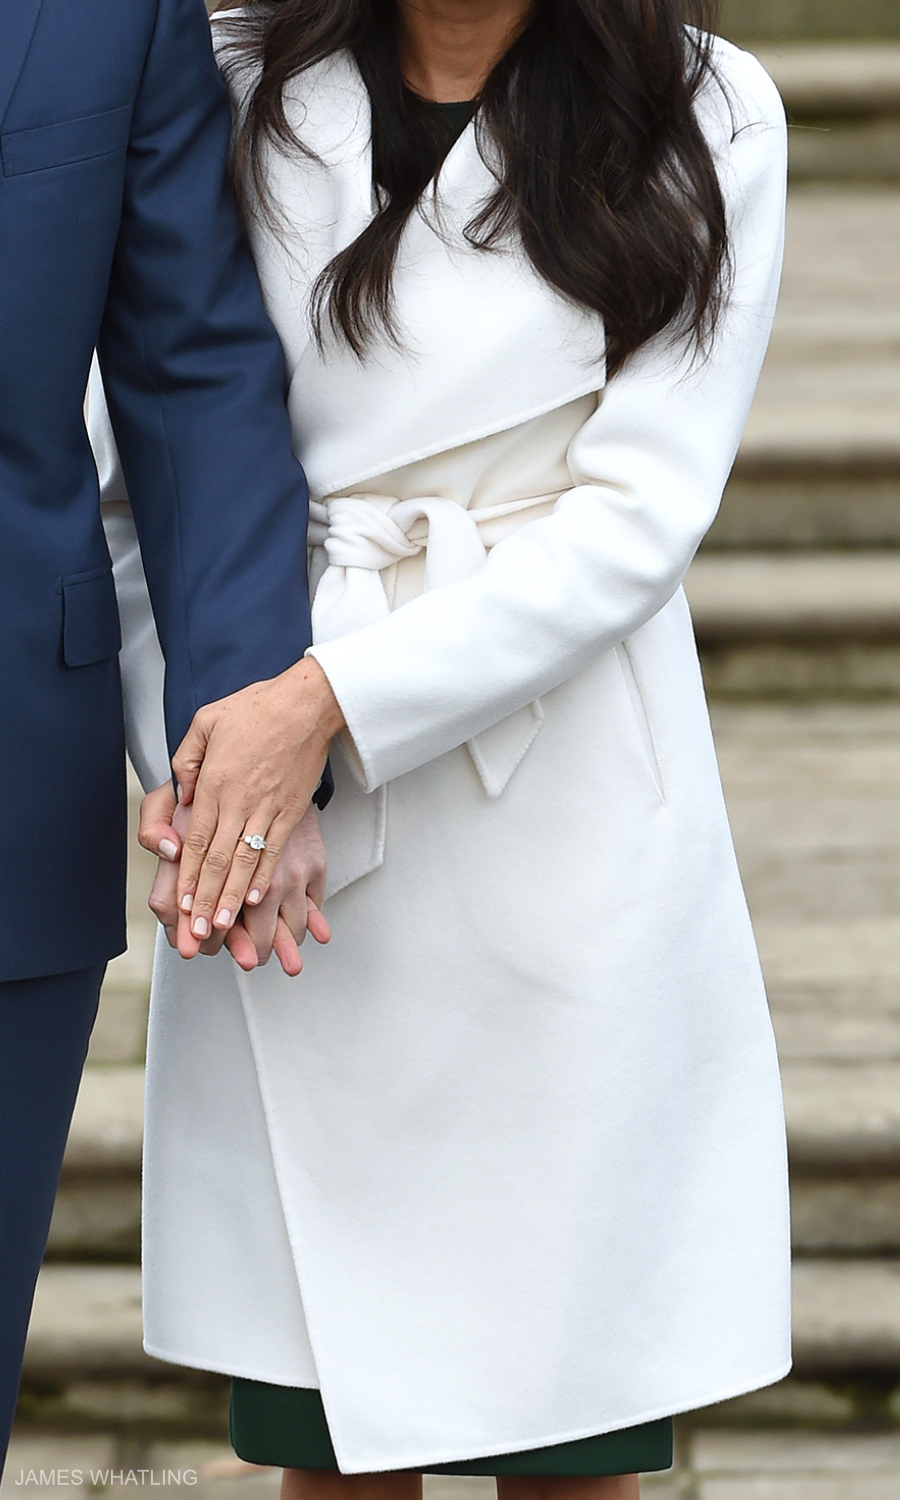 Meghan Markle's coat from the engagement announcement photocall